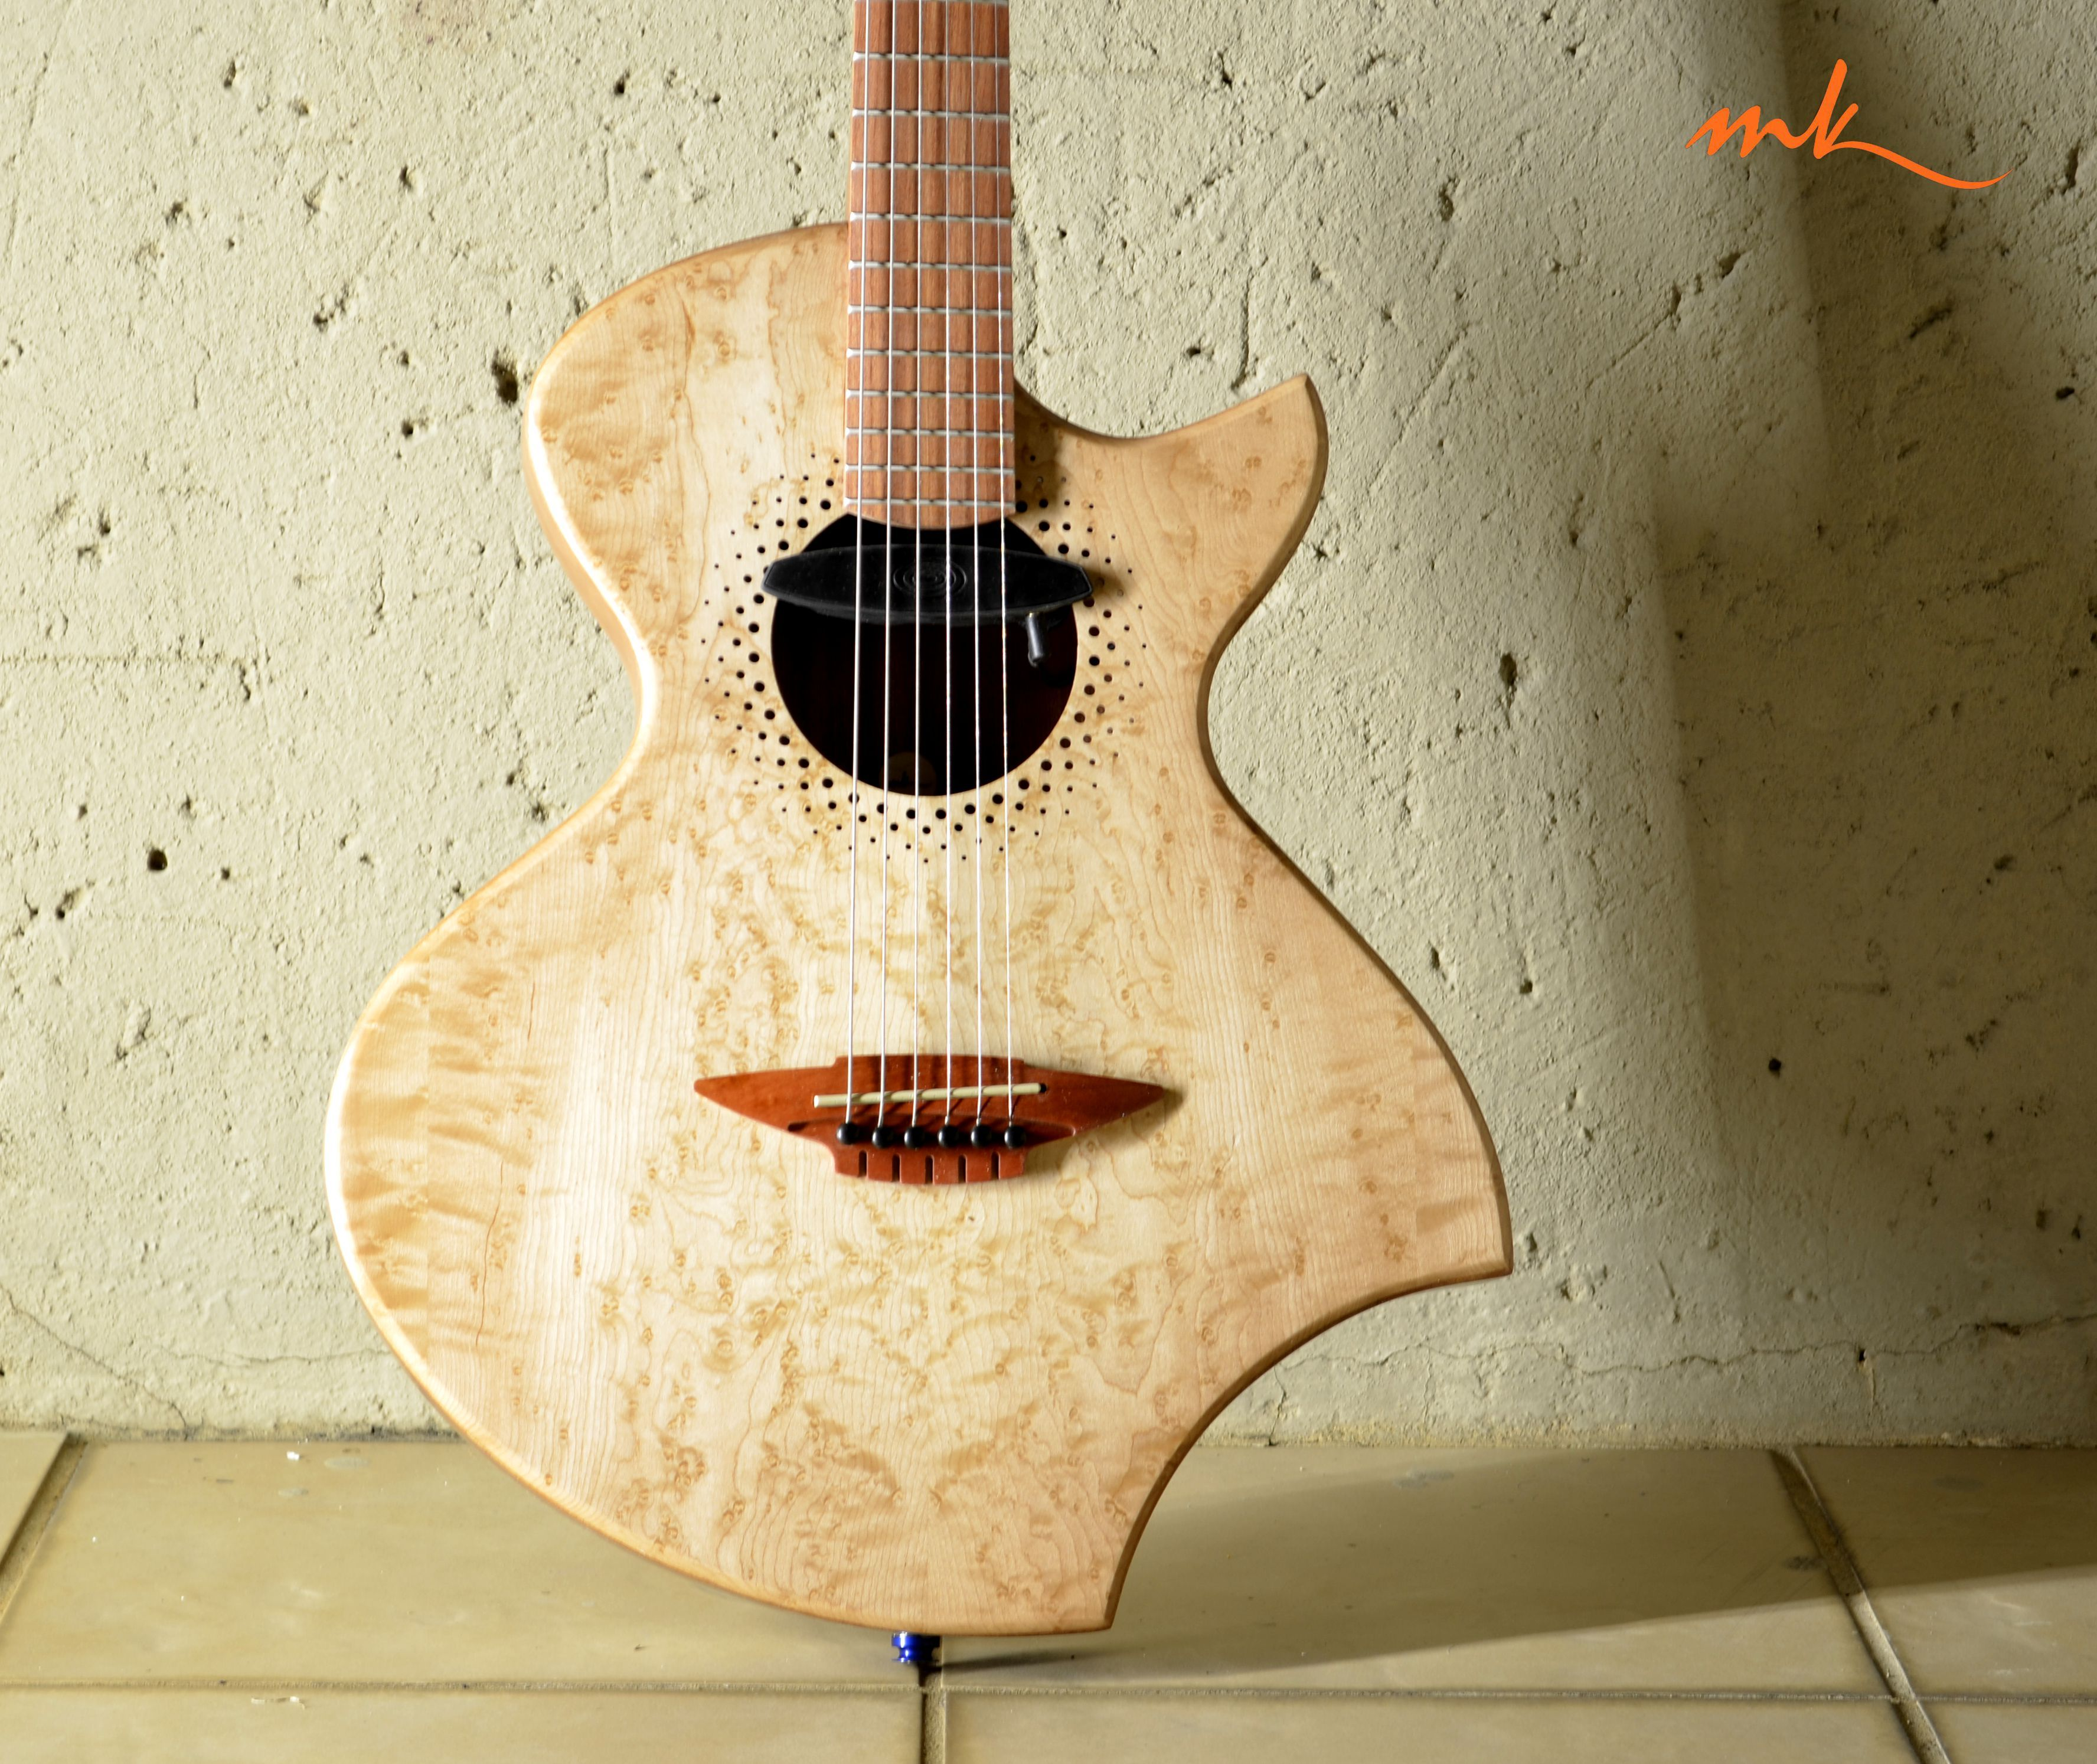 Mistral A New Thinline Acoustic Electric Hybrid Design Build By Http Murraykuun Com Wordpress Guitar Design Acoustic Guitar Guitar